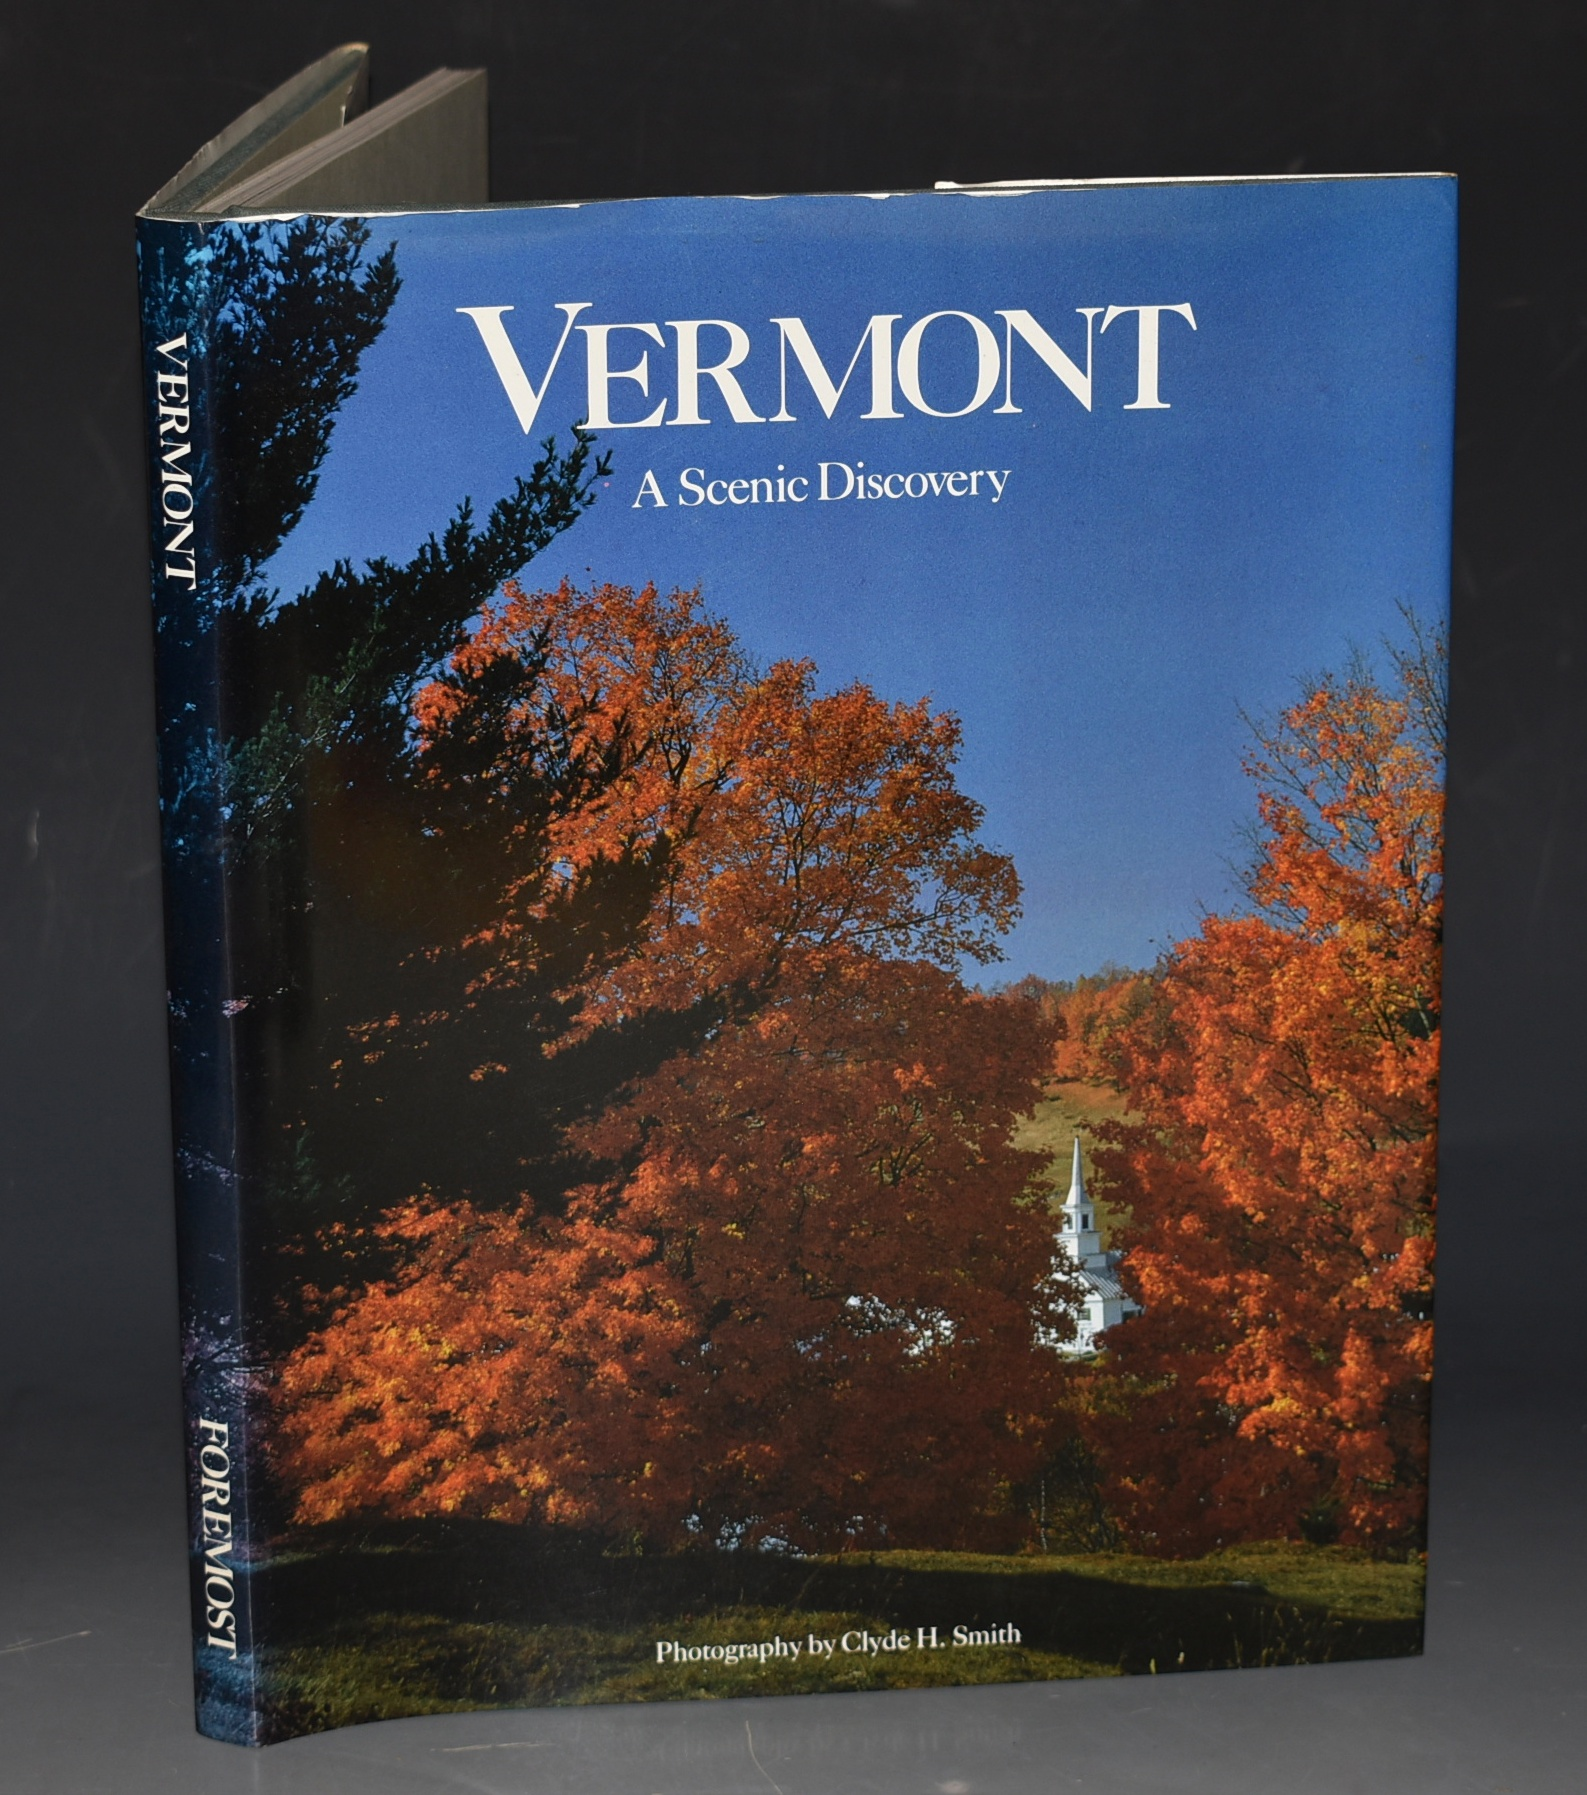 Image for Vermont. A Scenic Discovery. Introduction by Brian Vachon.